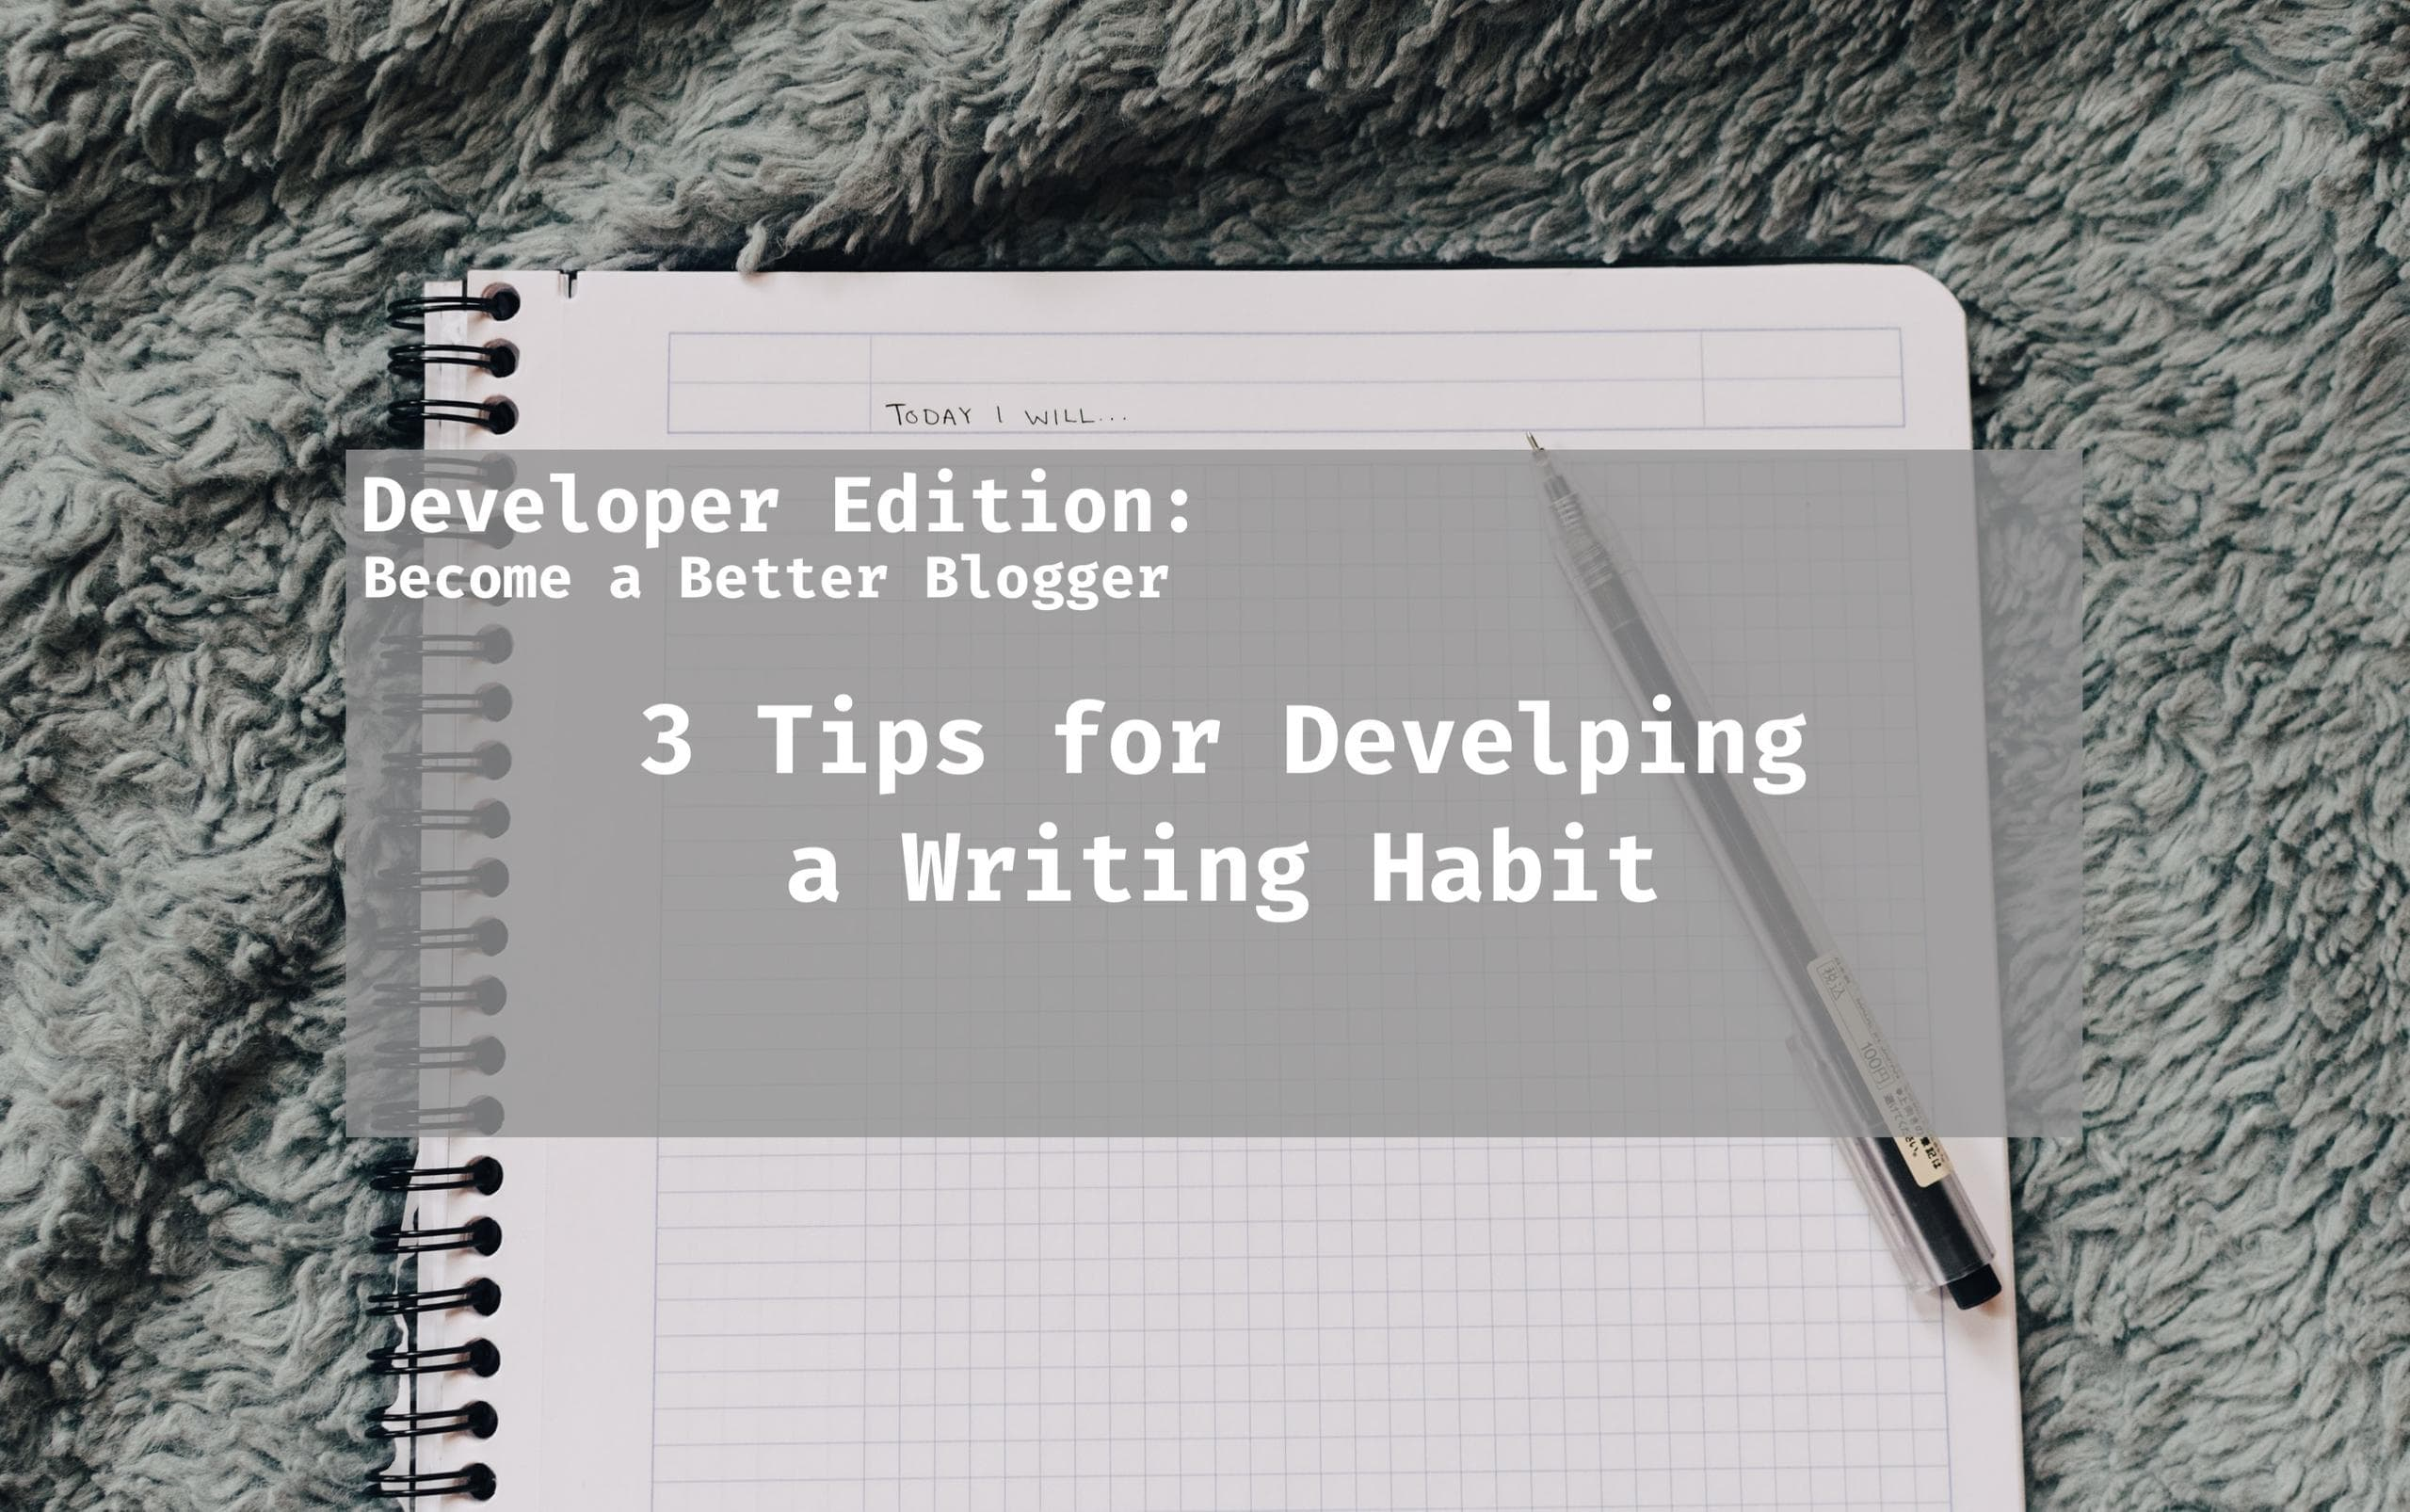 3 Tips for Developing a Writing Habit